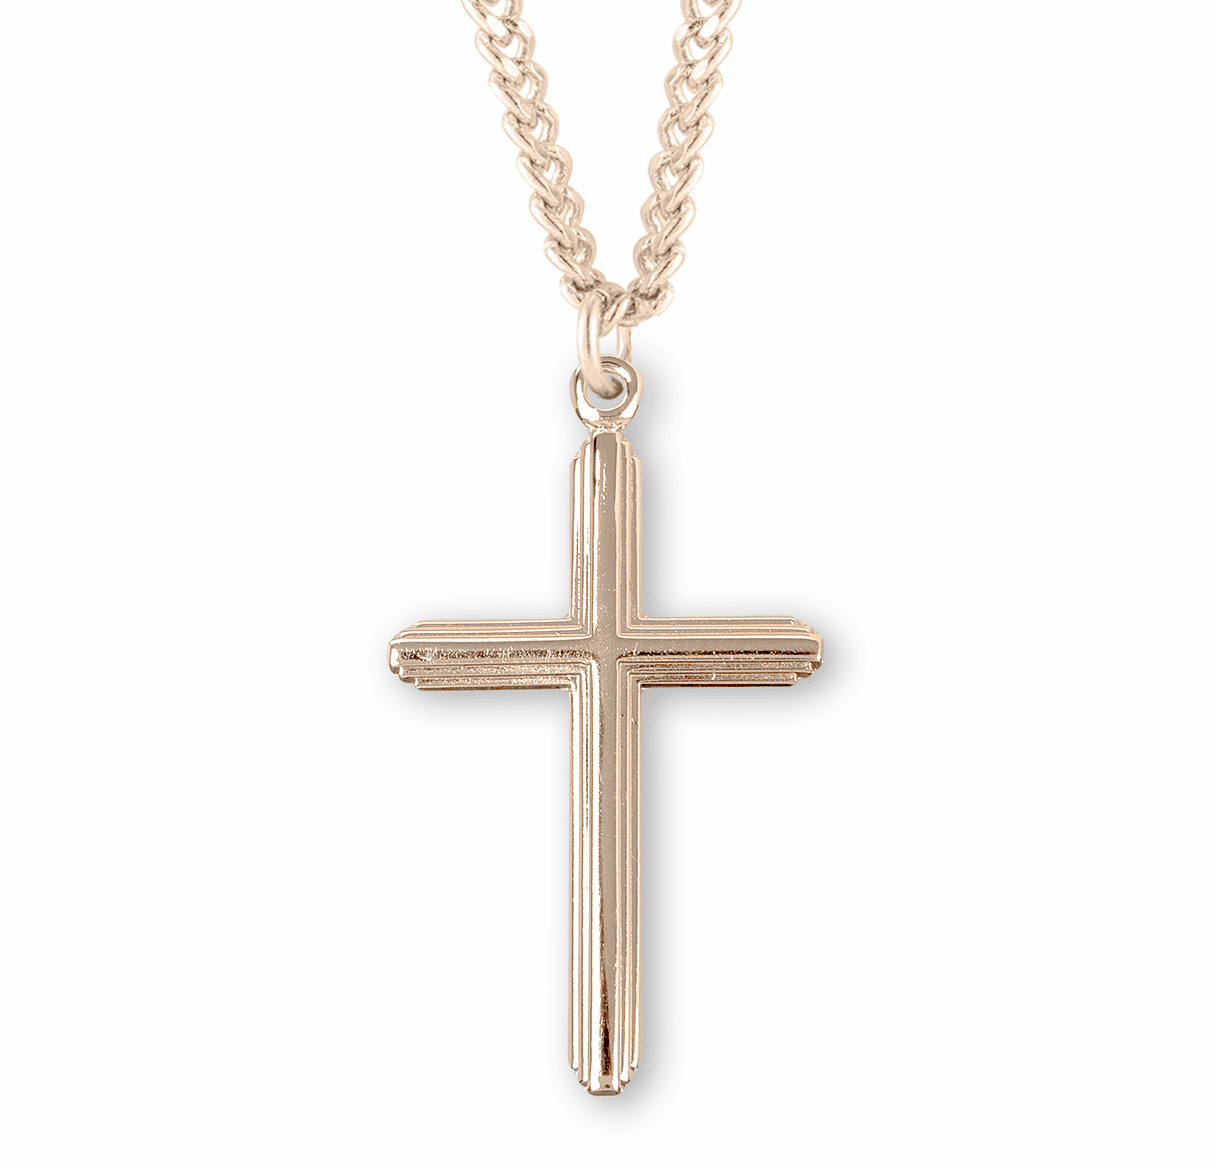 HMH Religious Gold over Sterling Inlayed Cross Necklace